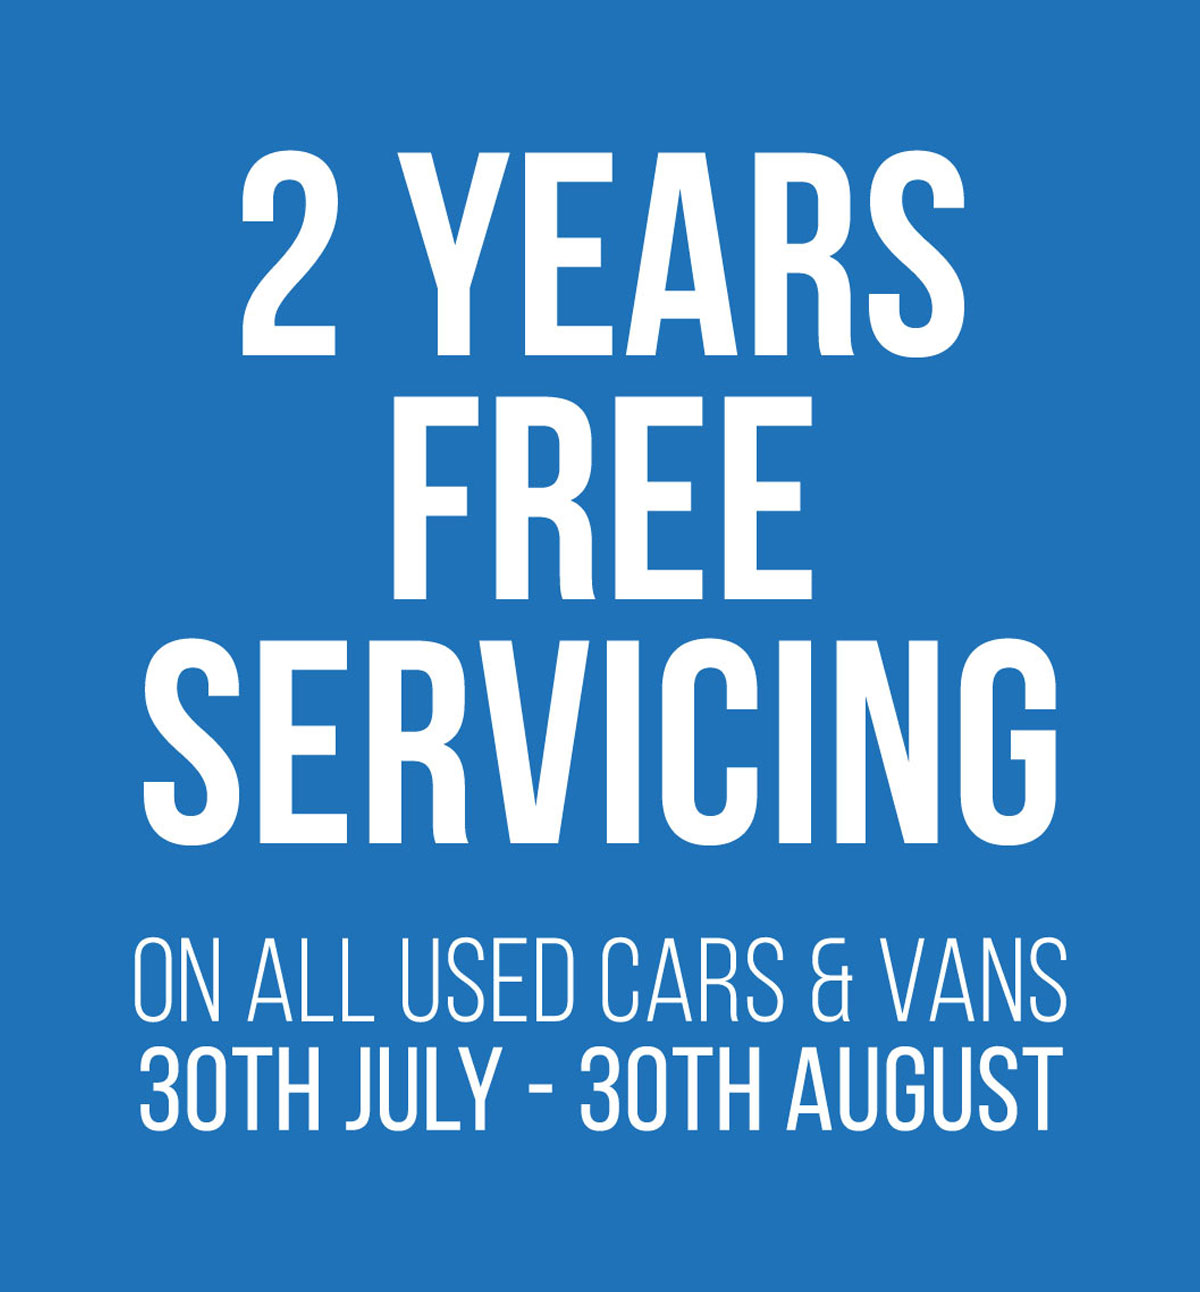 2 years free servicing LP